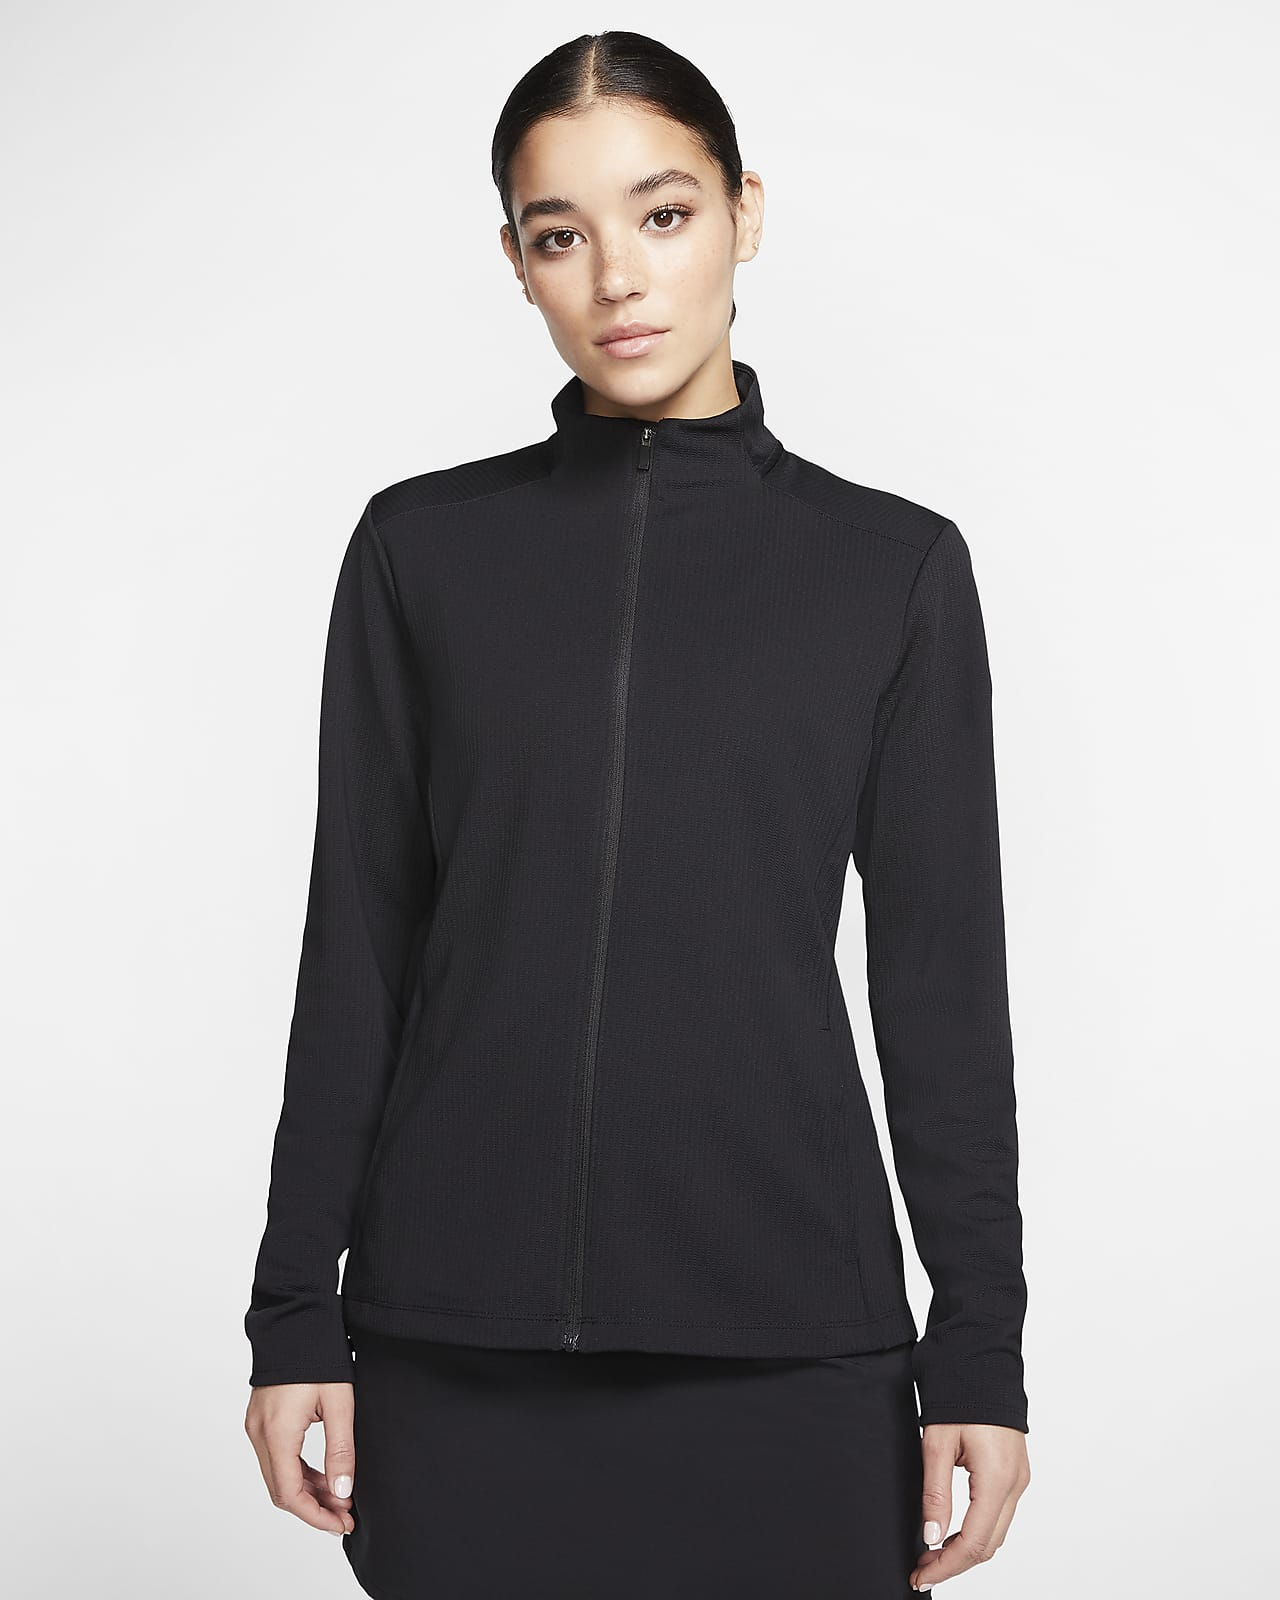 Nike Dri-FIT UV Victory Women's Full-Zip Golf Jacket